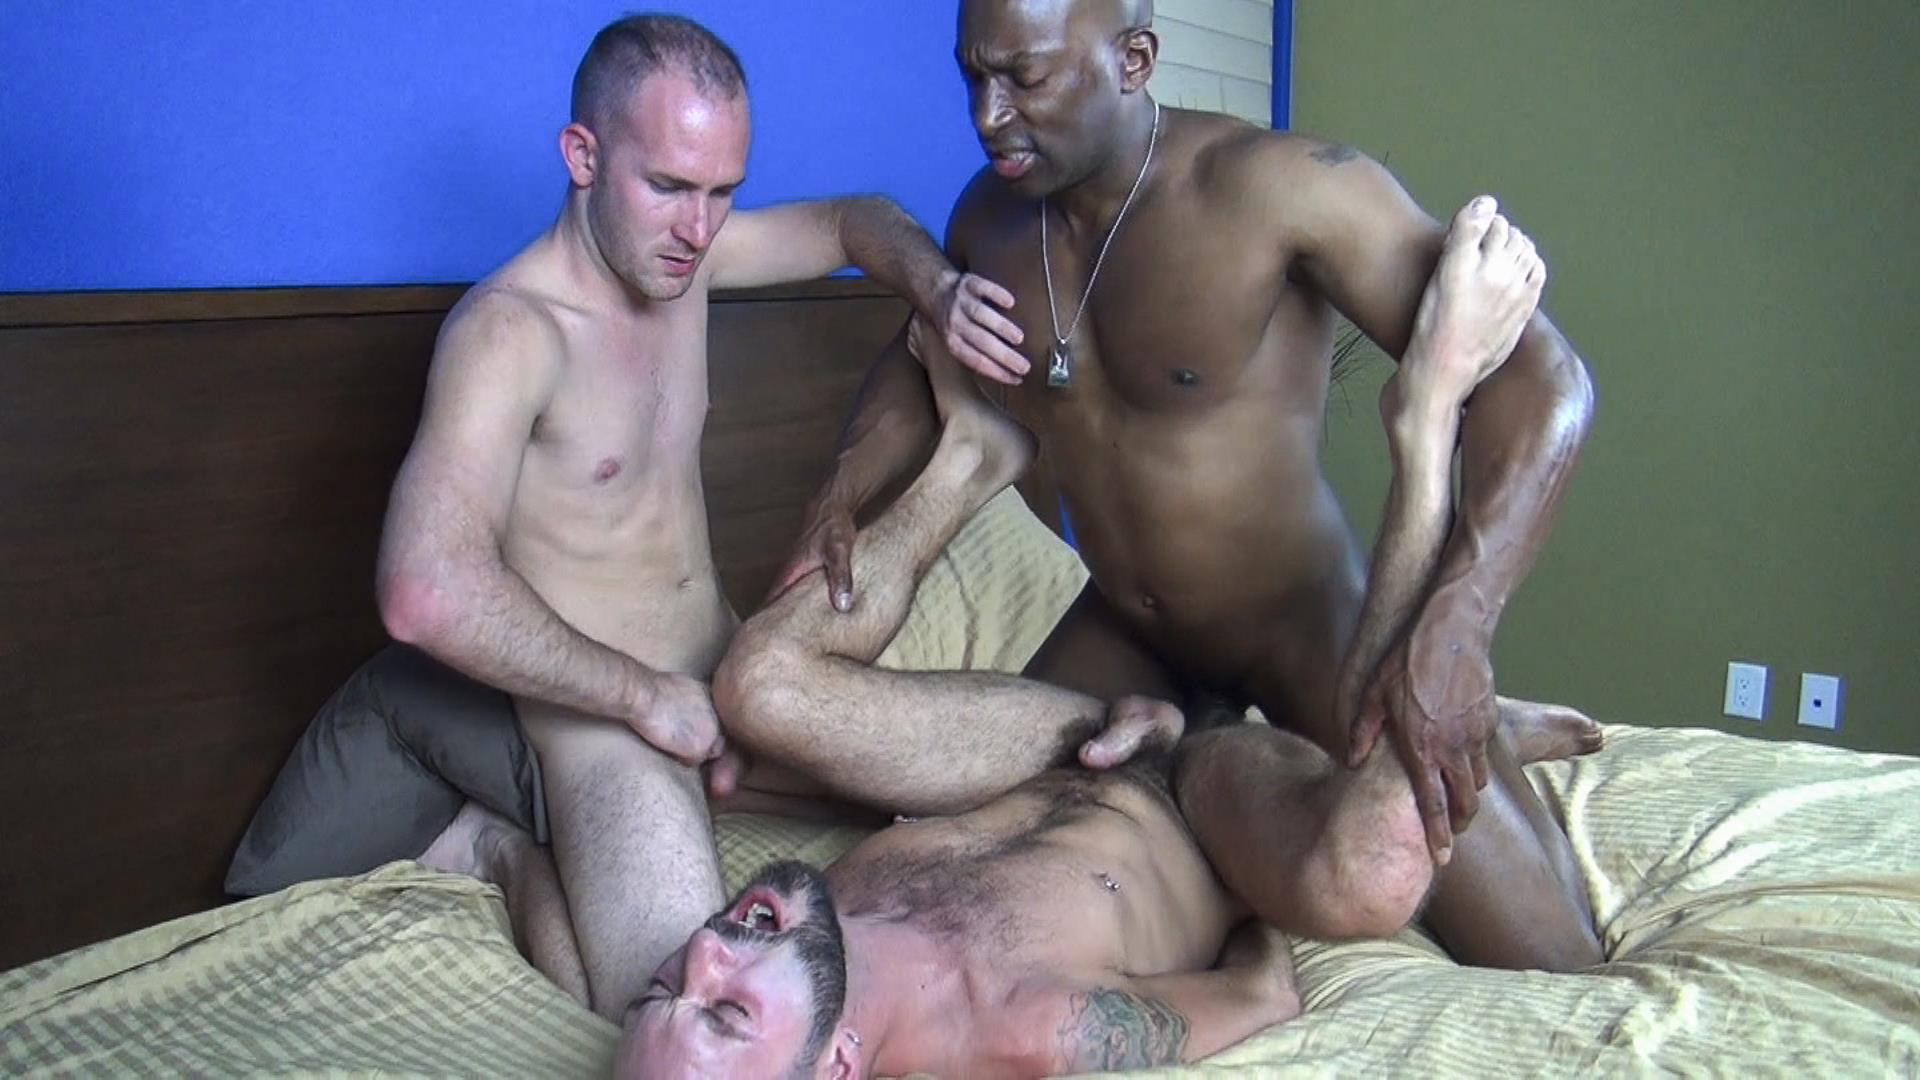 Hot Interracial Gay Guys Group Fuck